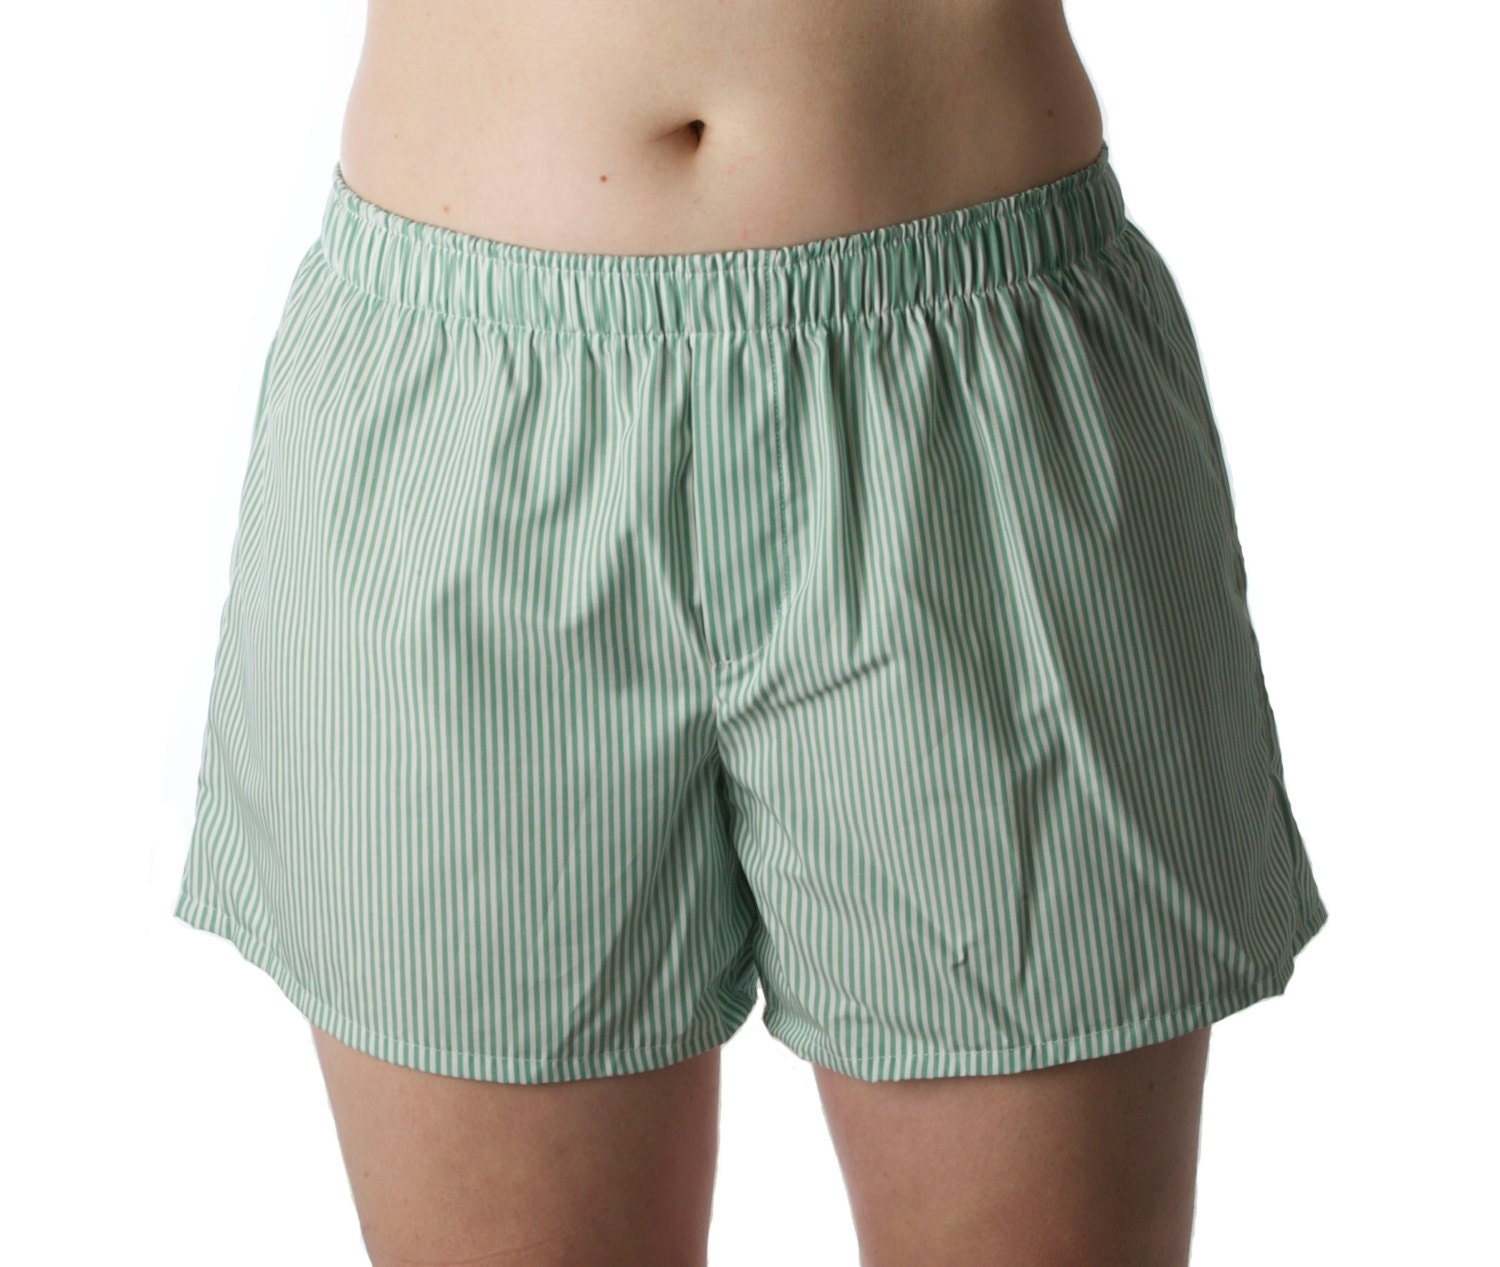 "Mens Boxer Shorts If your answer to the age-old question of, ""Boxers or briefs?"", is a resounding, ""Boxers!"", then you've come to the right place! At Freshpair, we know how satisfying it is to slip into a new pair of comfy cotton boxer shorts."